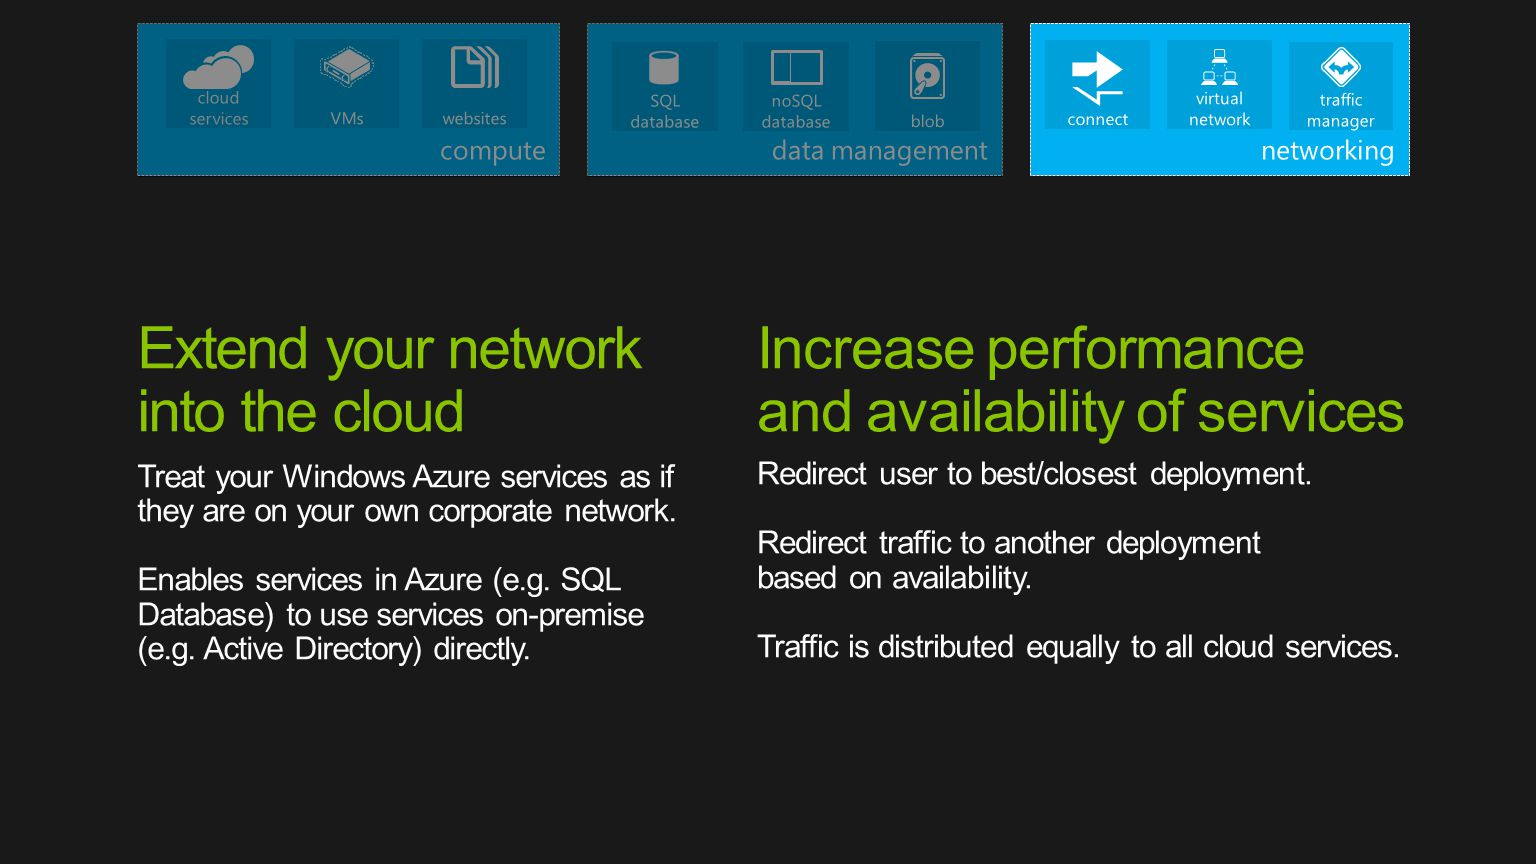 Extend your network into the cloud